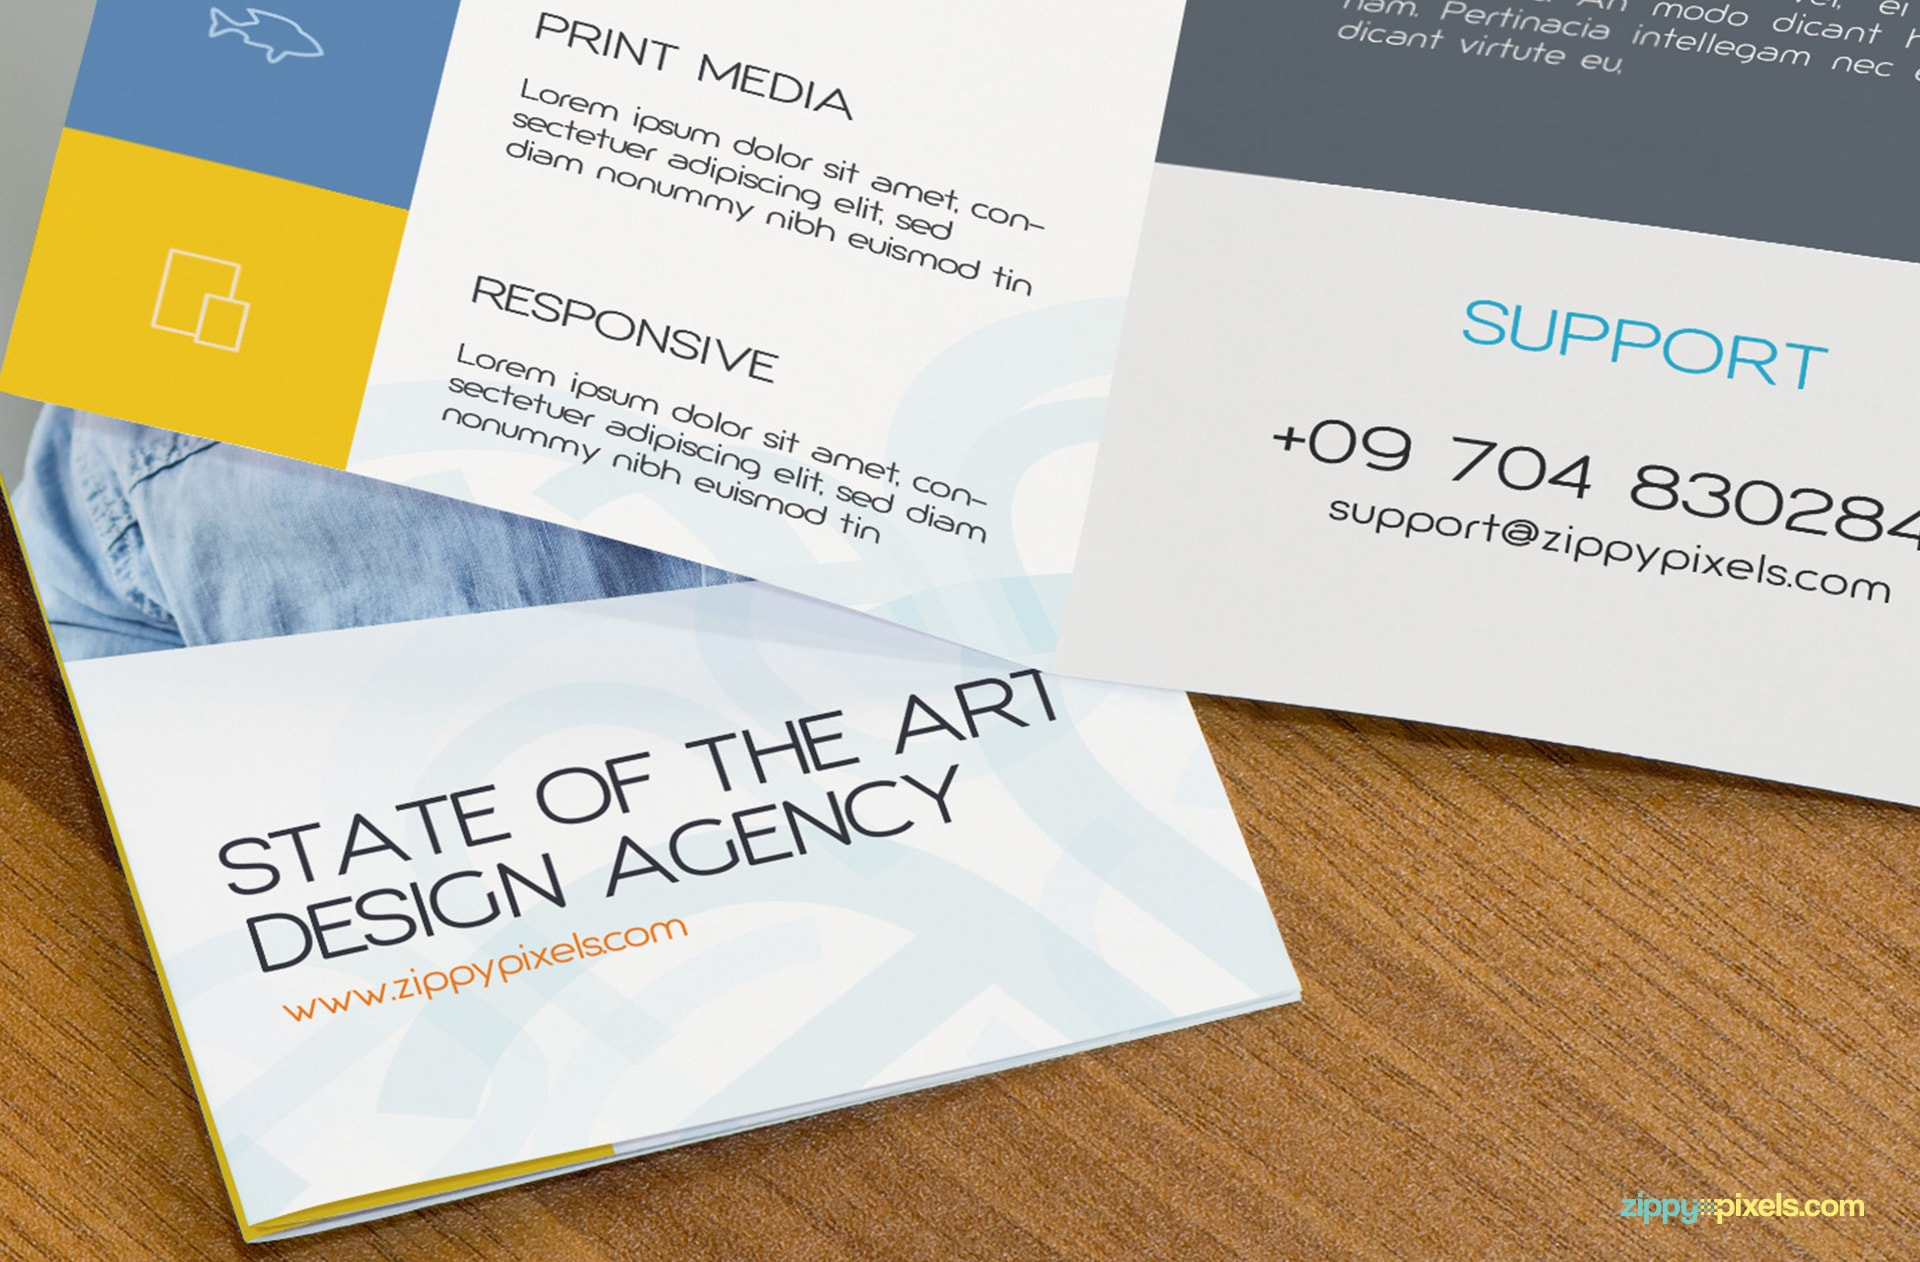 2 Bifold Flyers on Table for Flyer Mockup 3